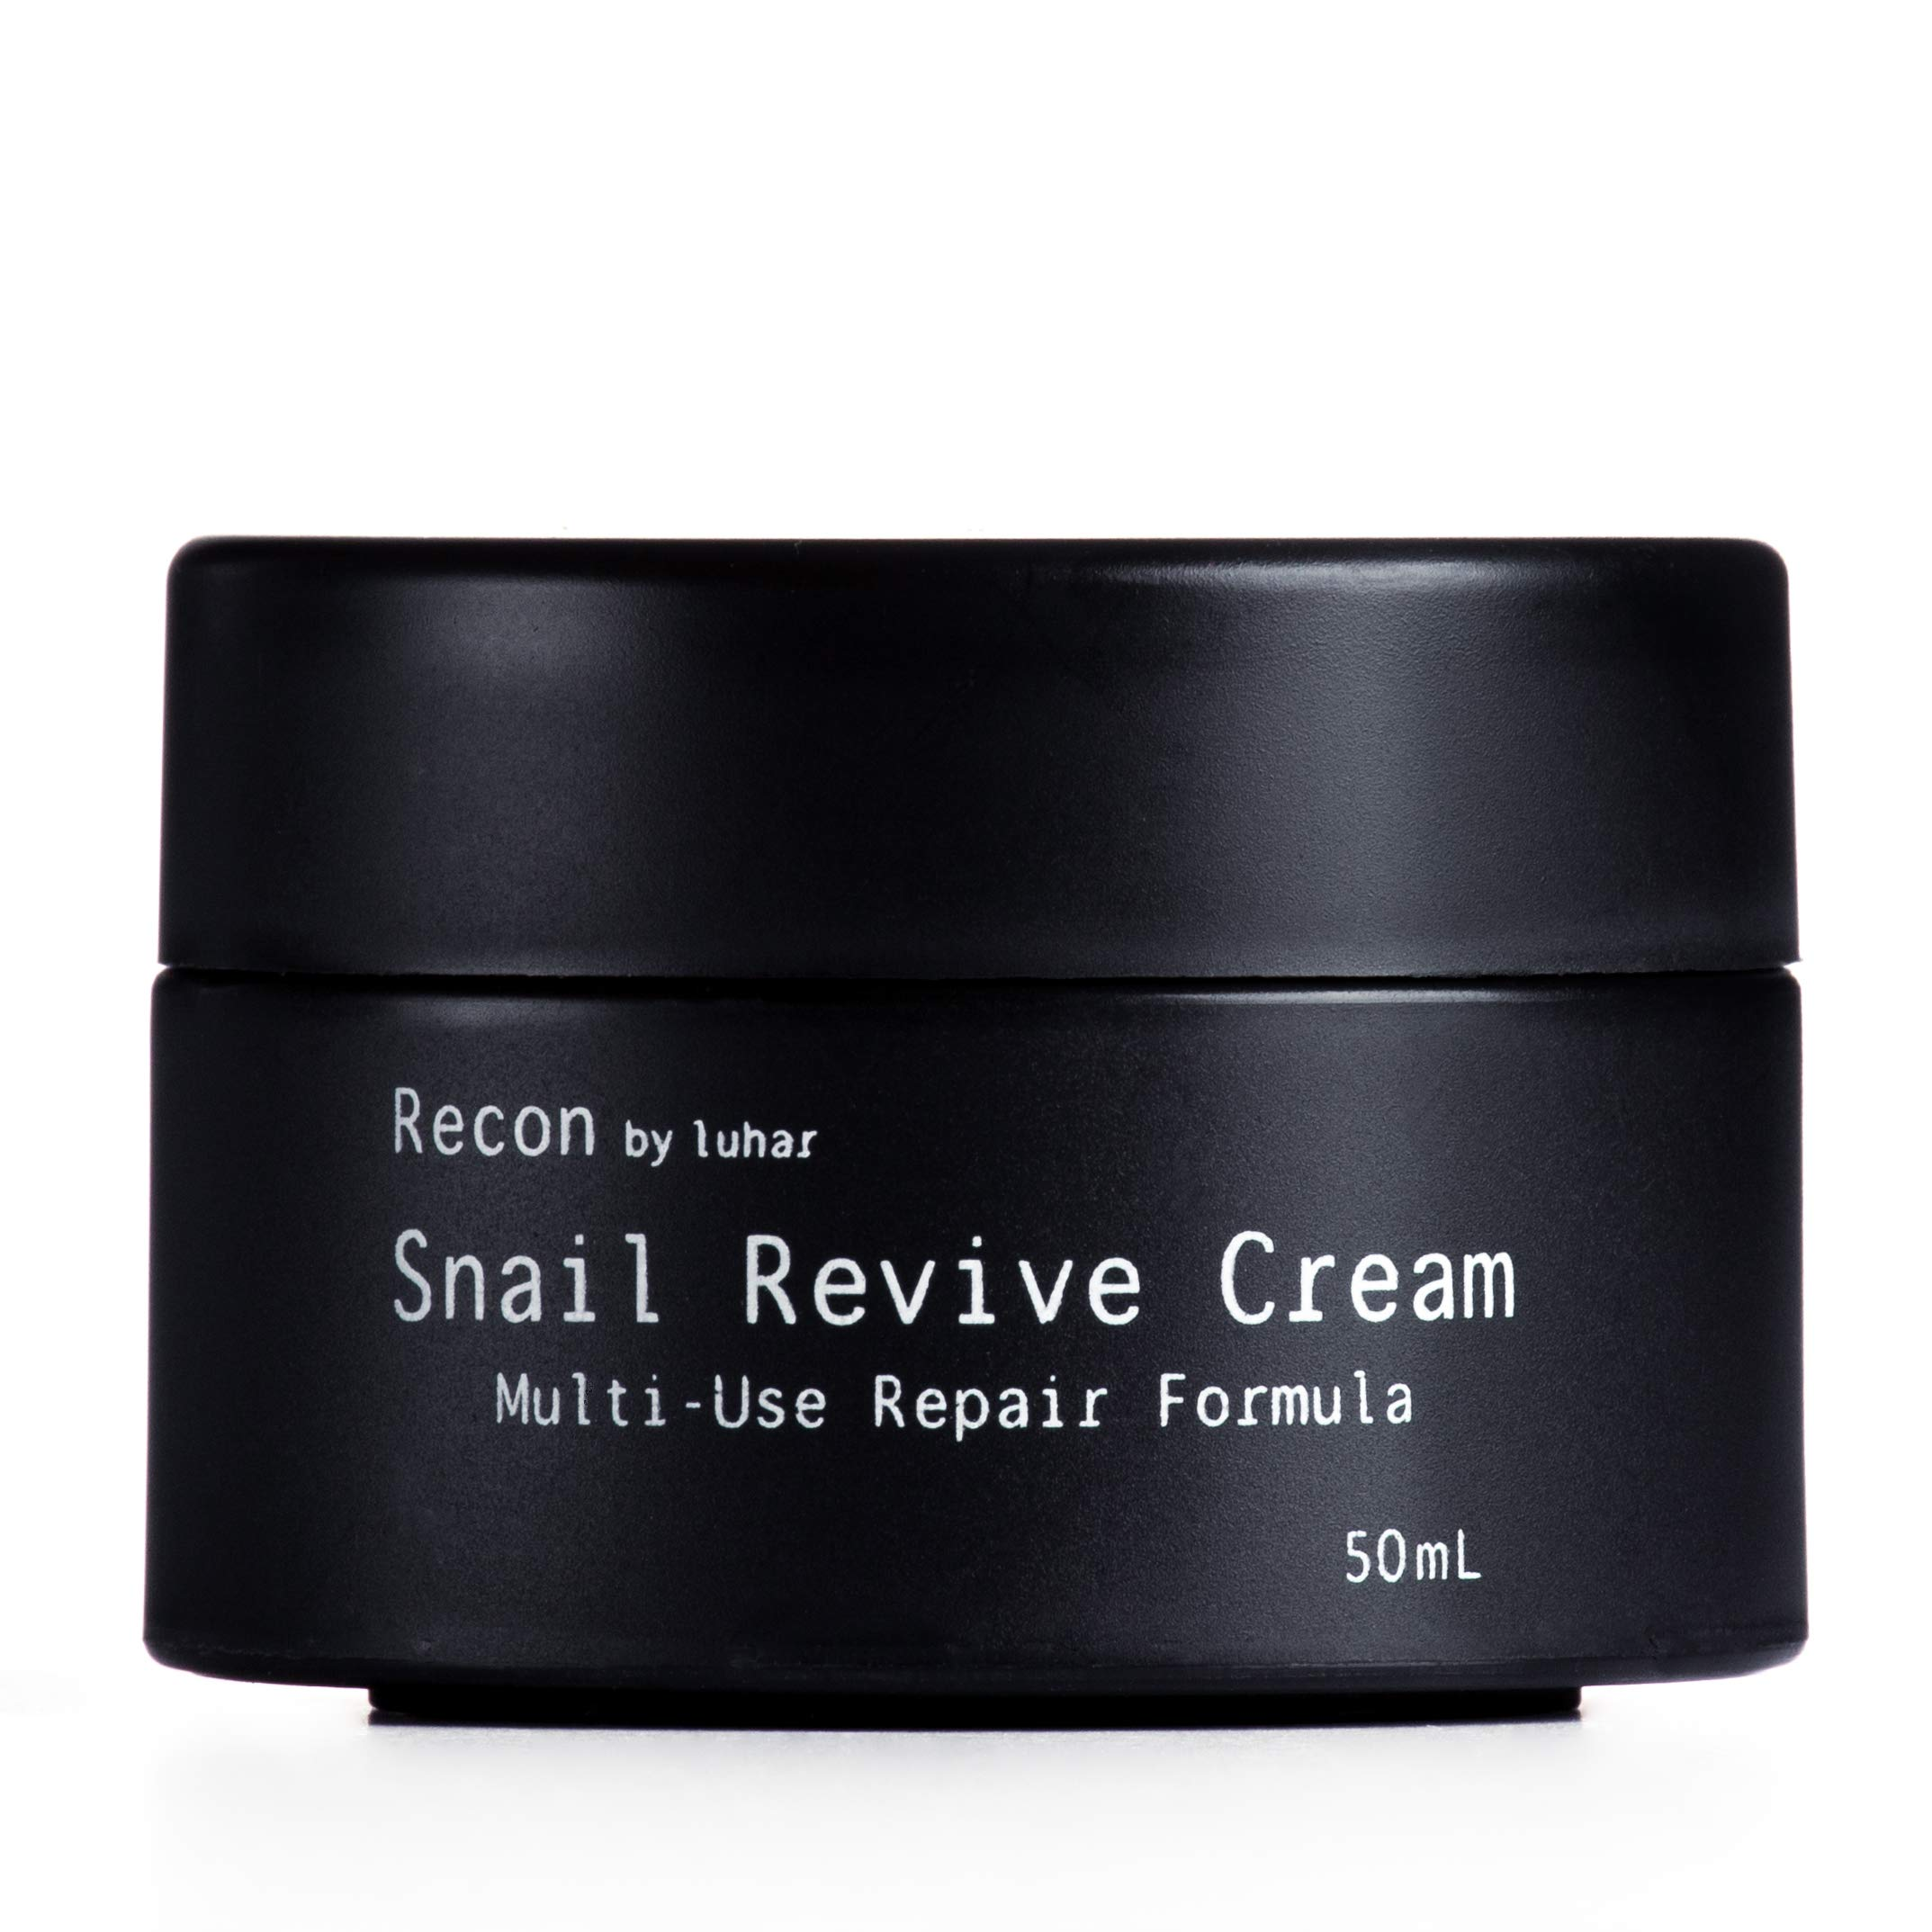 Recon by Luhar Snail Repair Cream All-In-One Facial Moisturizer – Anti-Wrinkle & Healing Face Cream, 50 mL